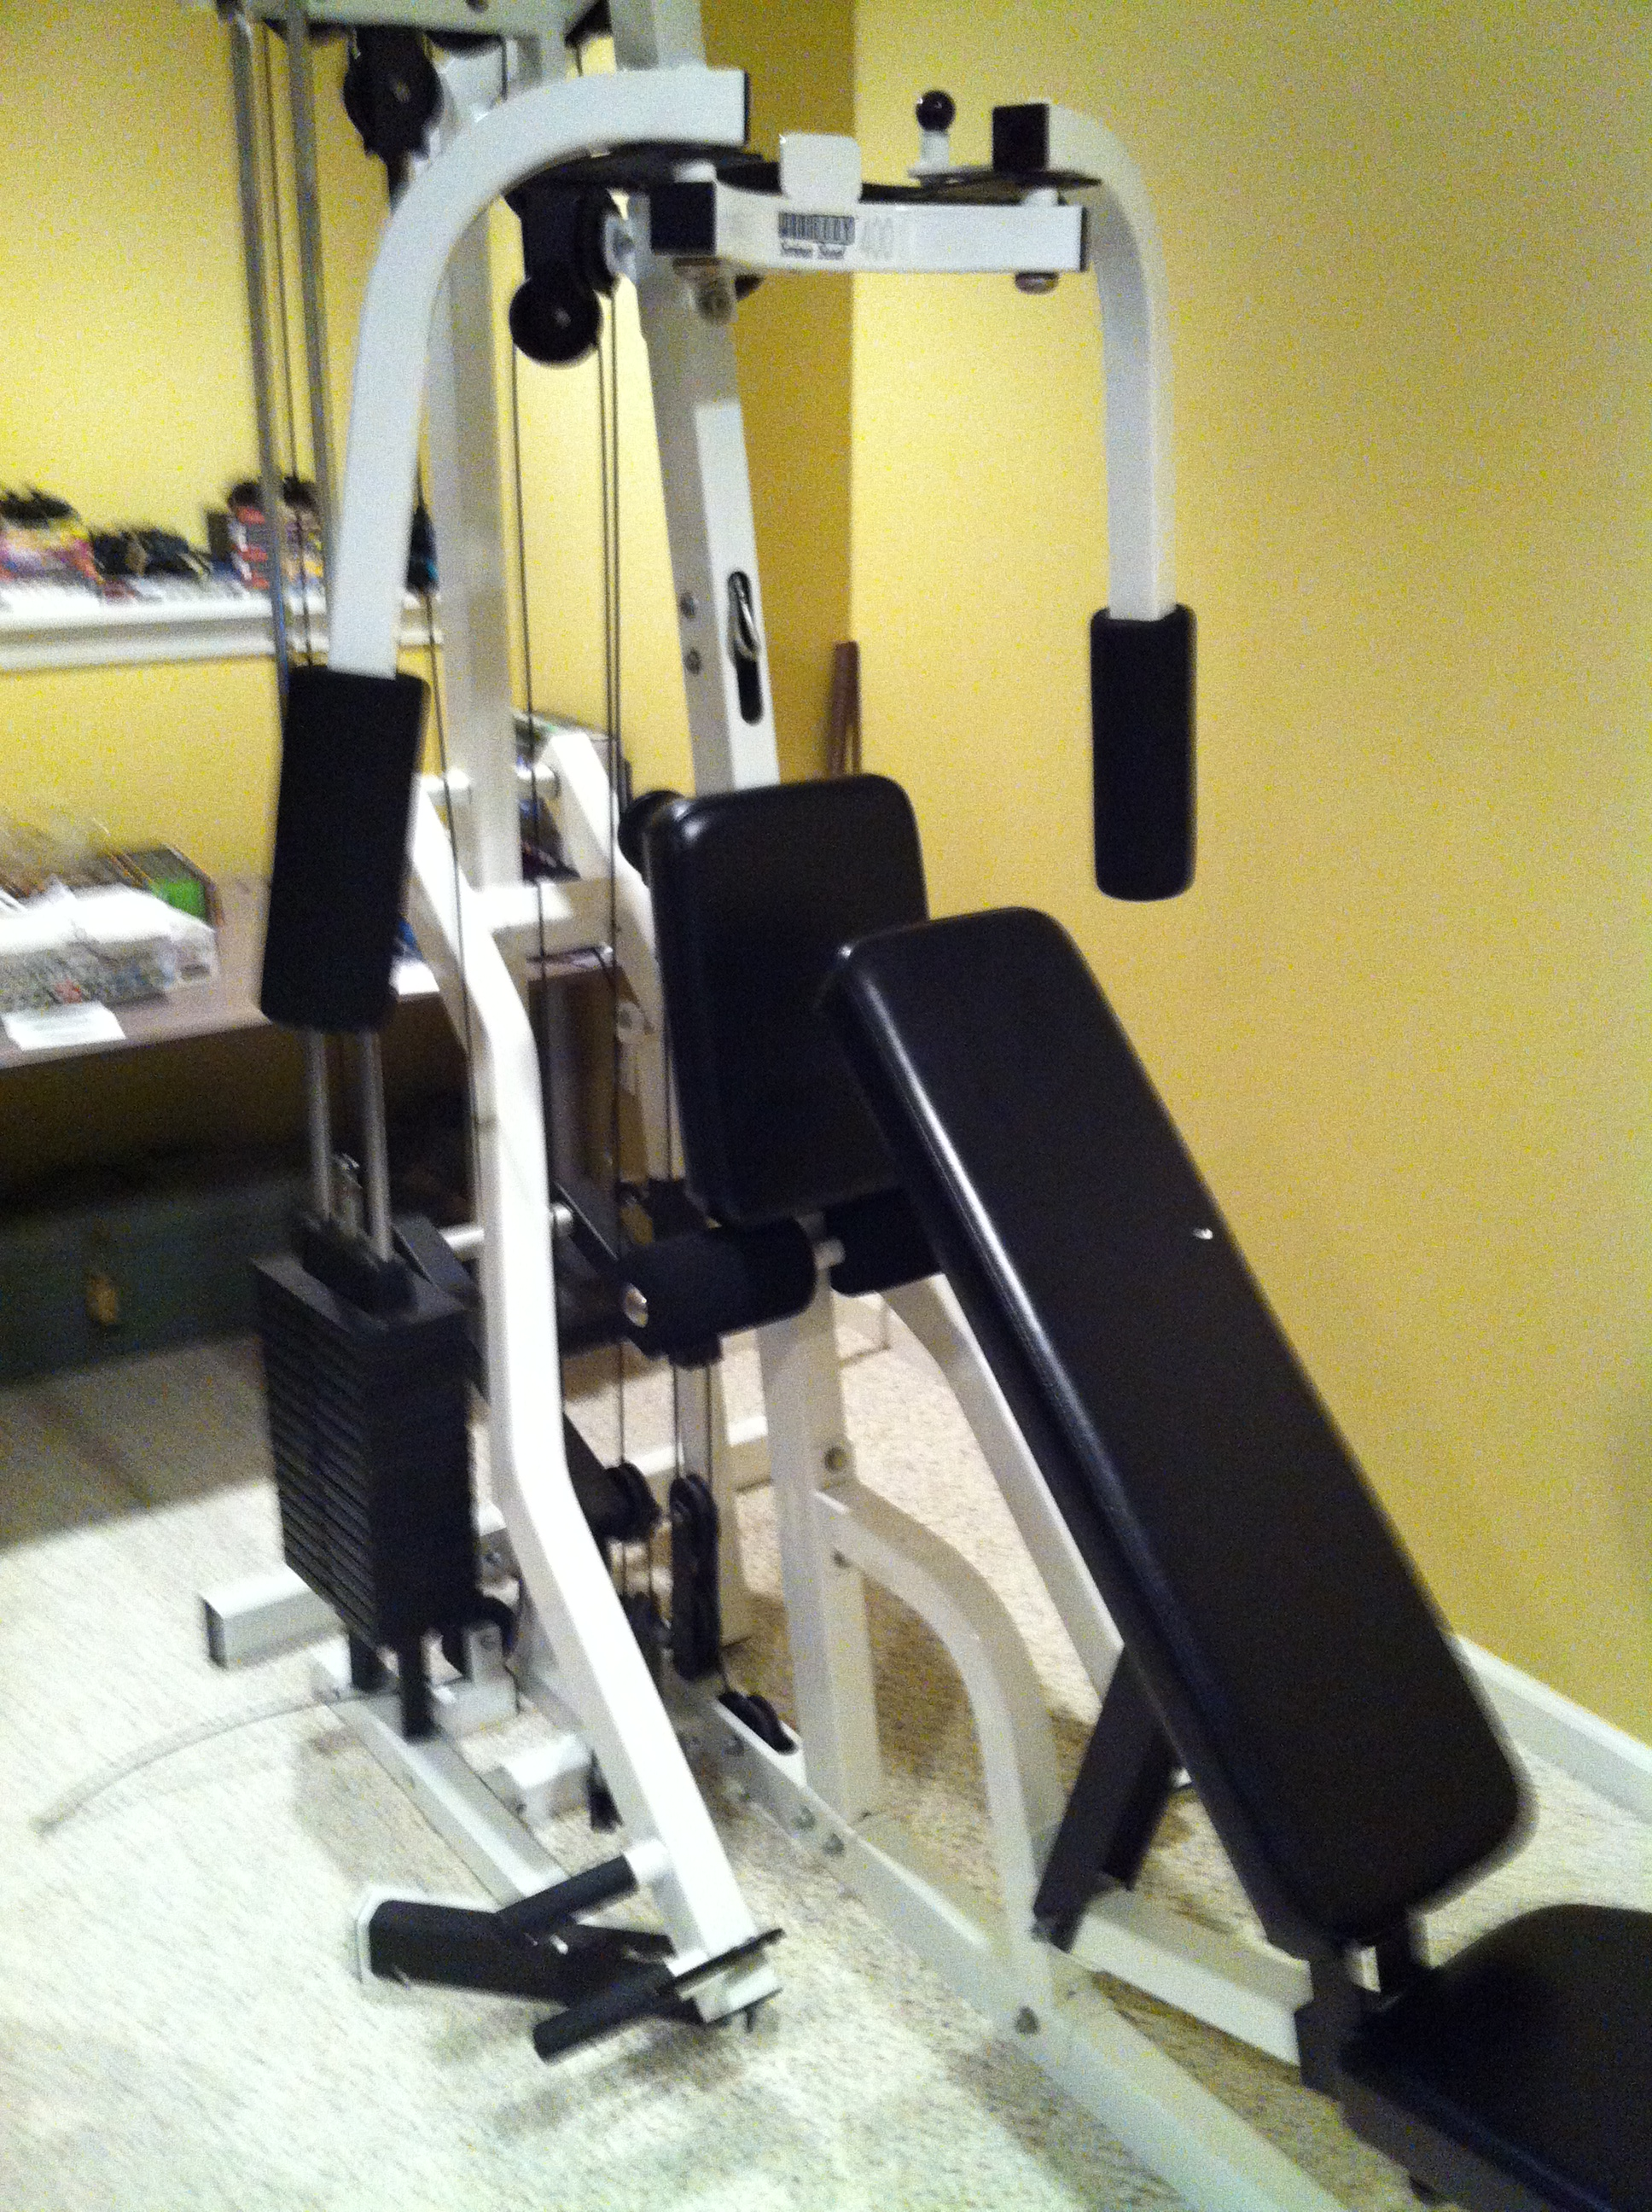 Parabody 400 home gym $100.00 on columbus day canton ct patch